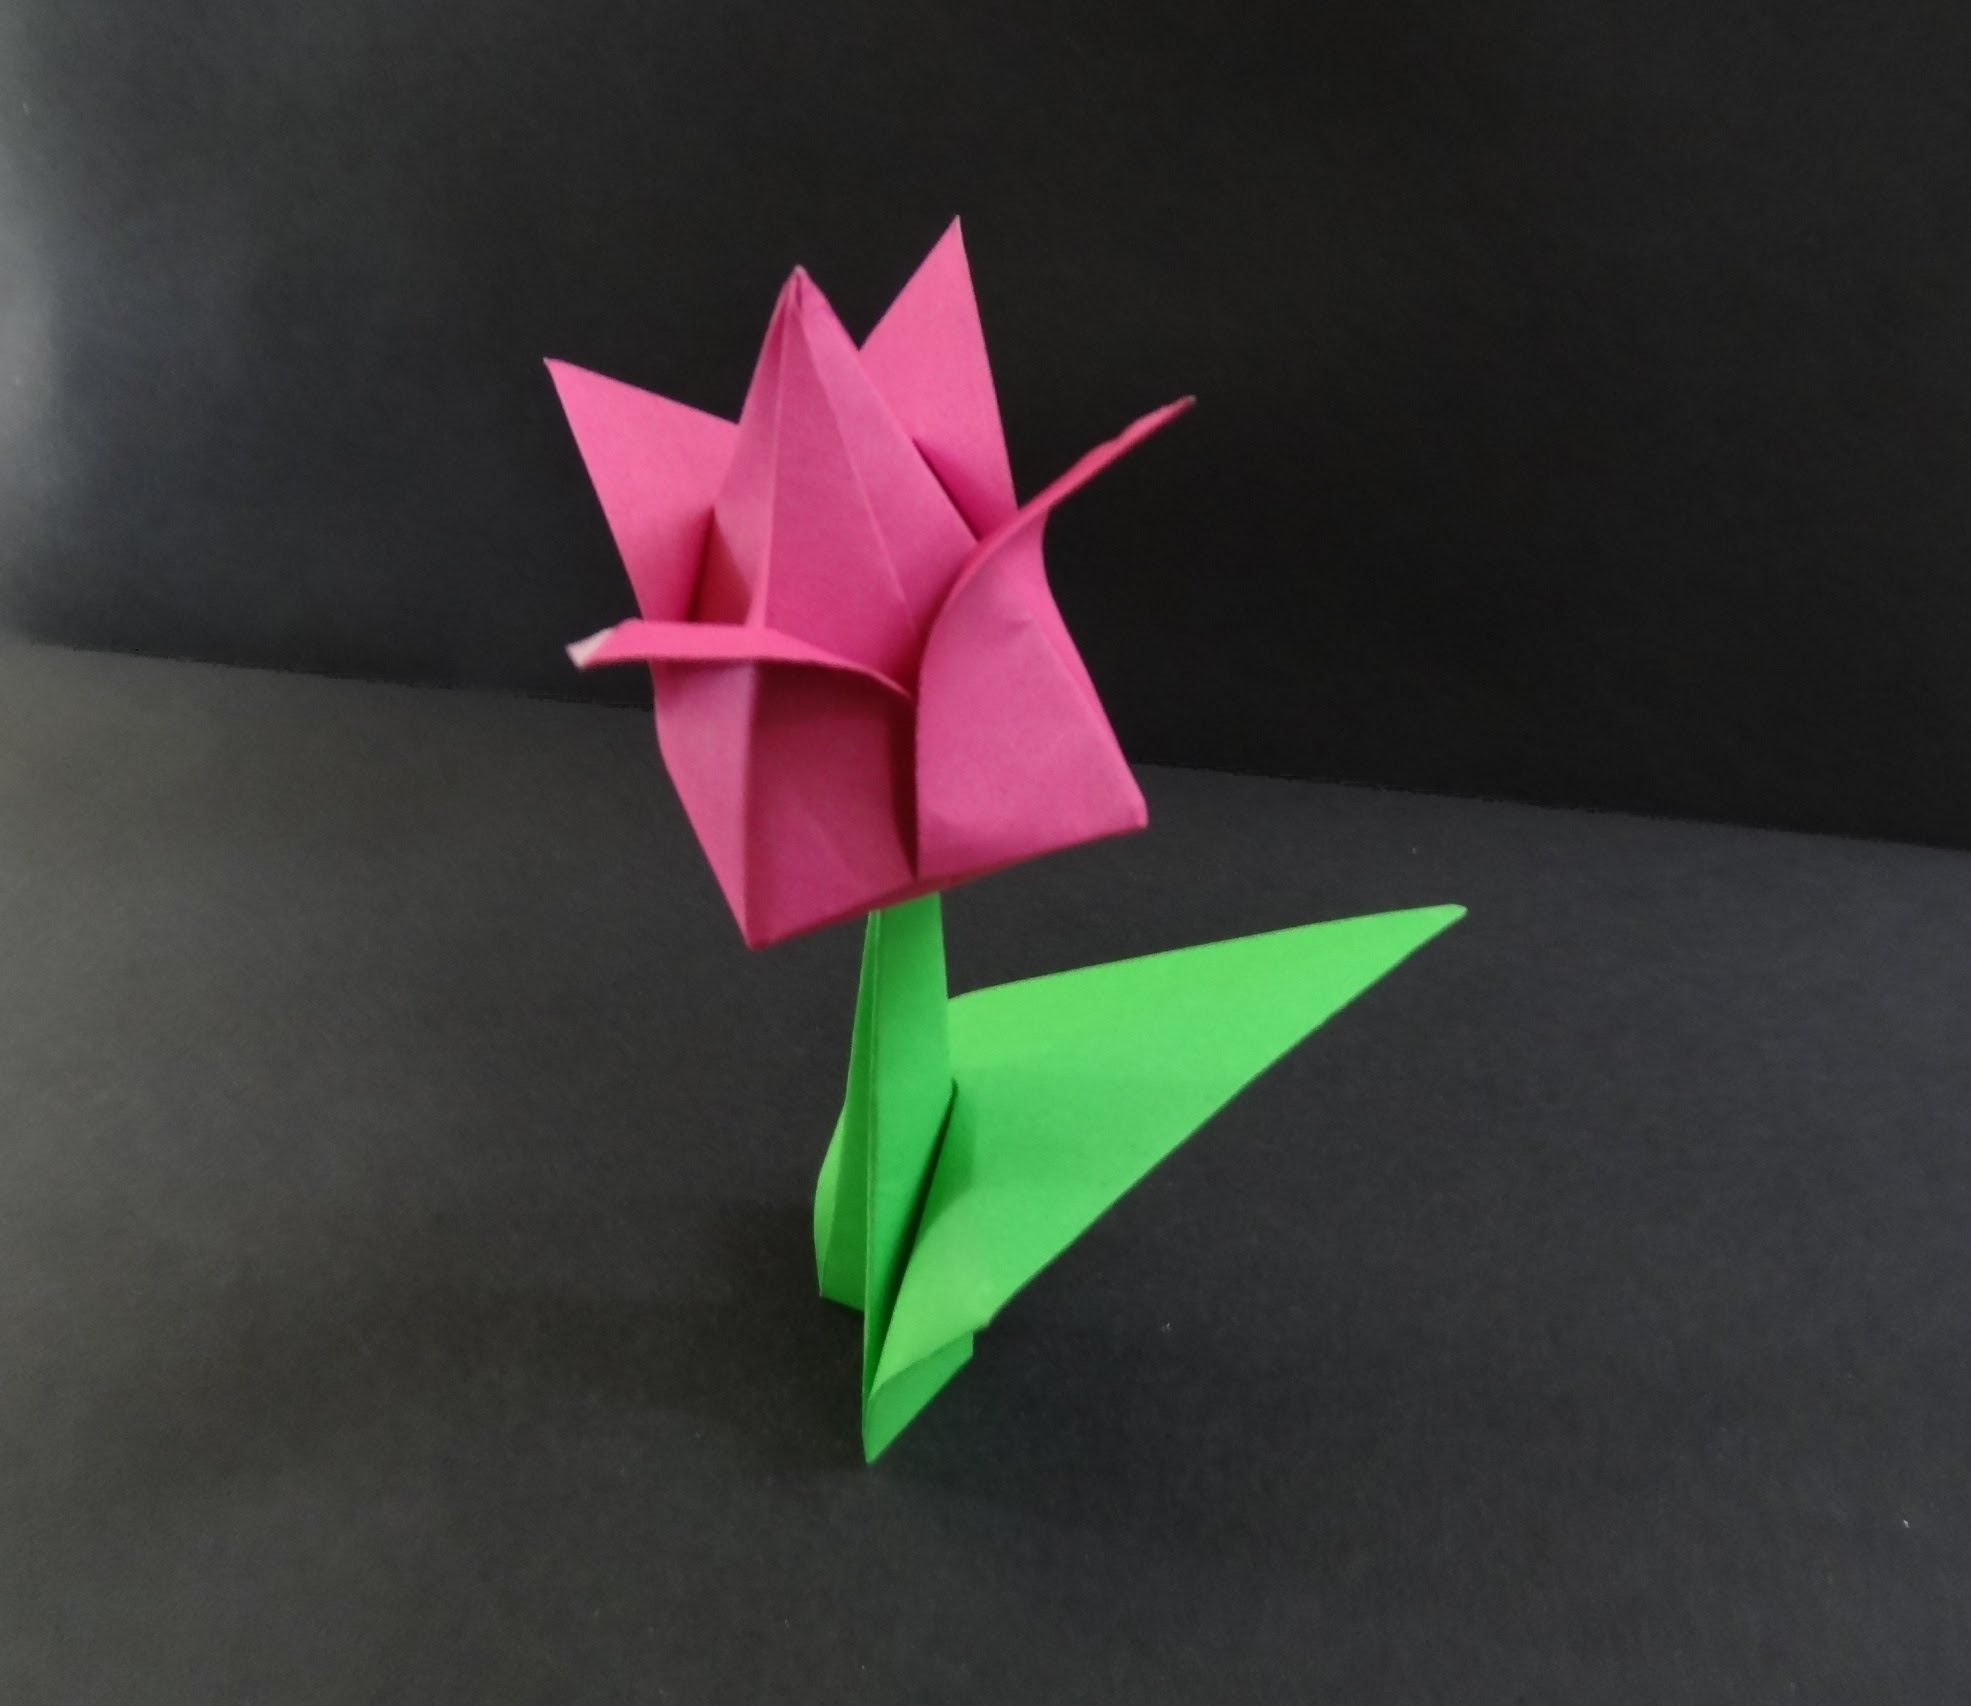 Origami flower tutorial how to fold a tulip flower origami origami flower tutorial how to fold a tulip flower dhlflorist Image collections